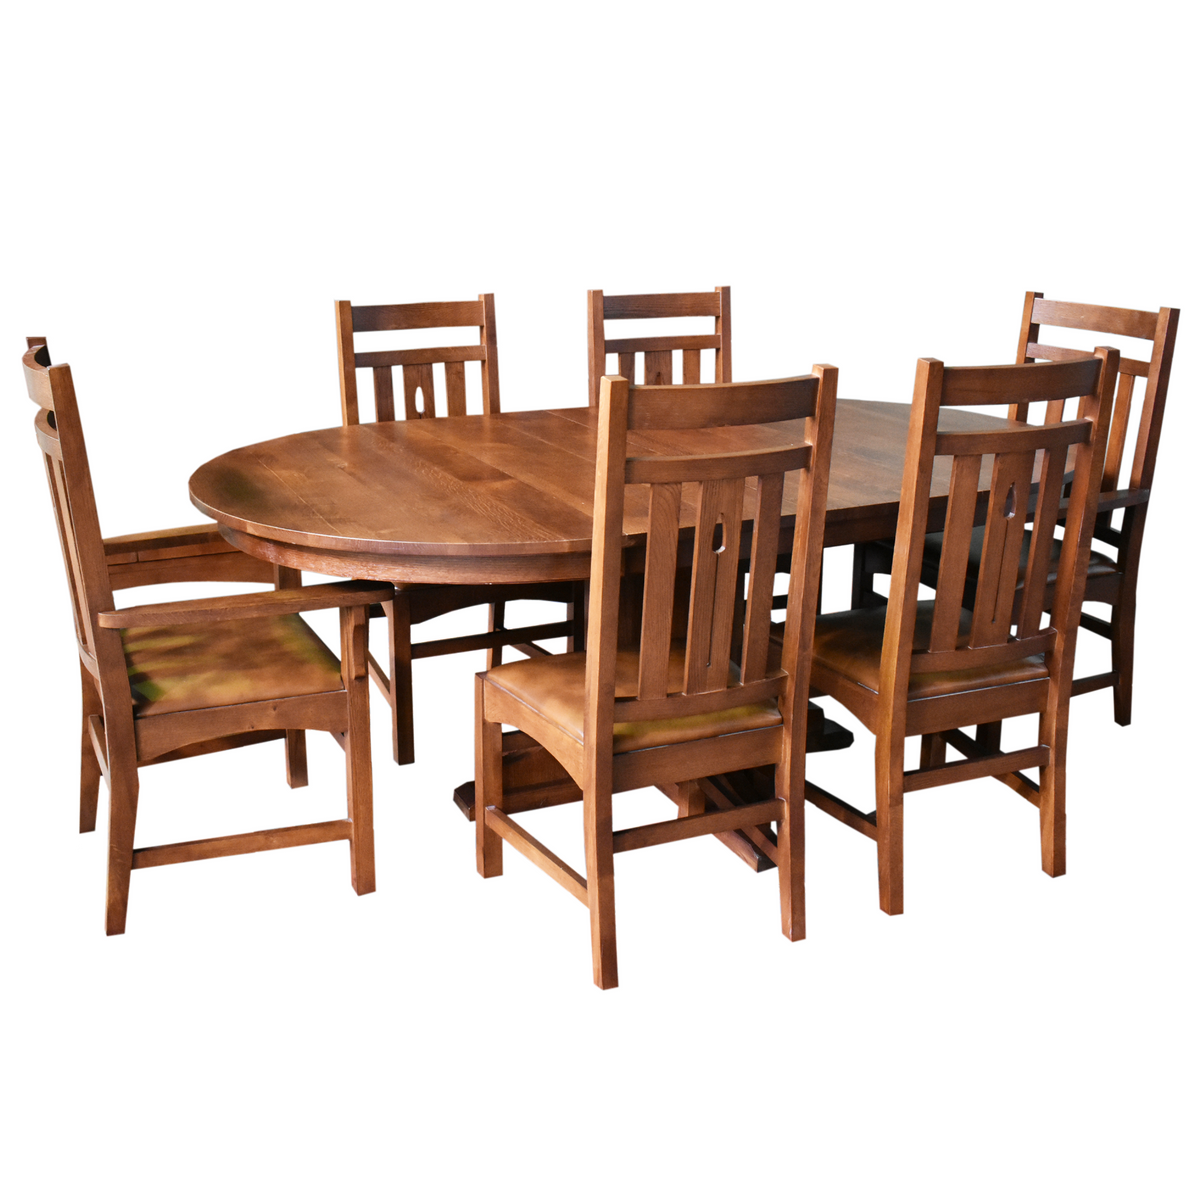 Picture of: 2 Leaf Round Dining Table Set W 6 Chairs Golden Brown Crafters And Weavers